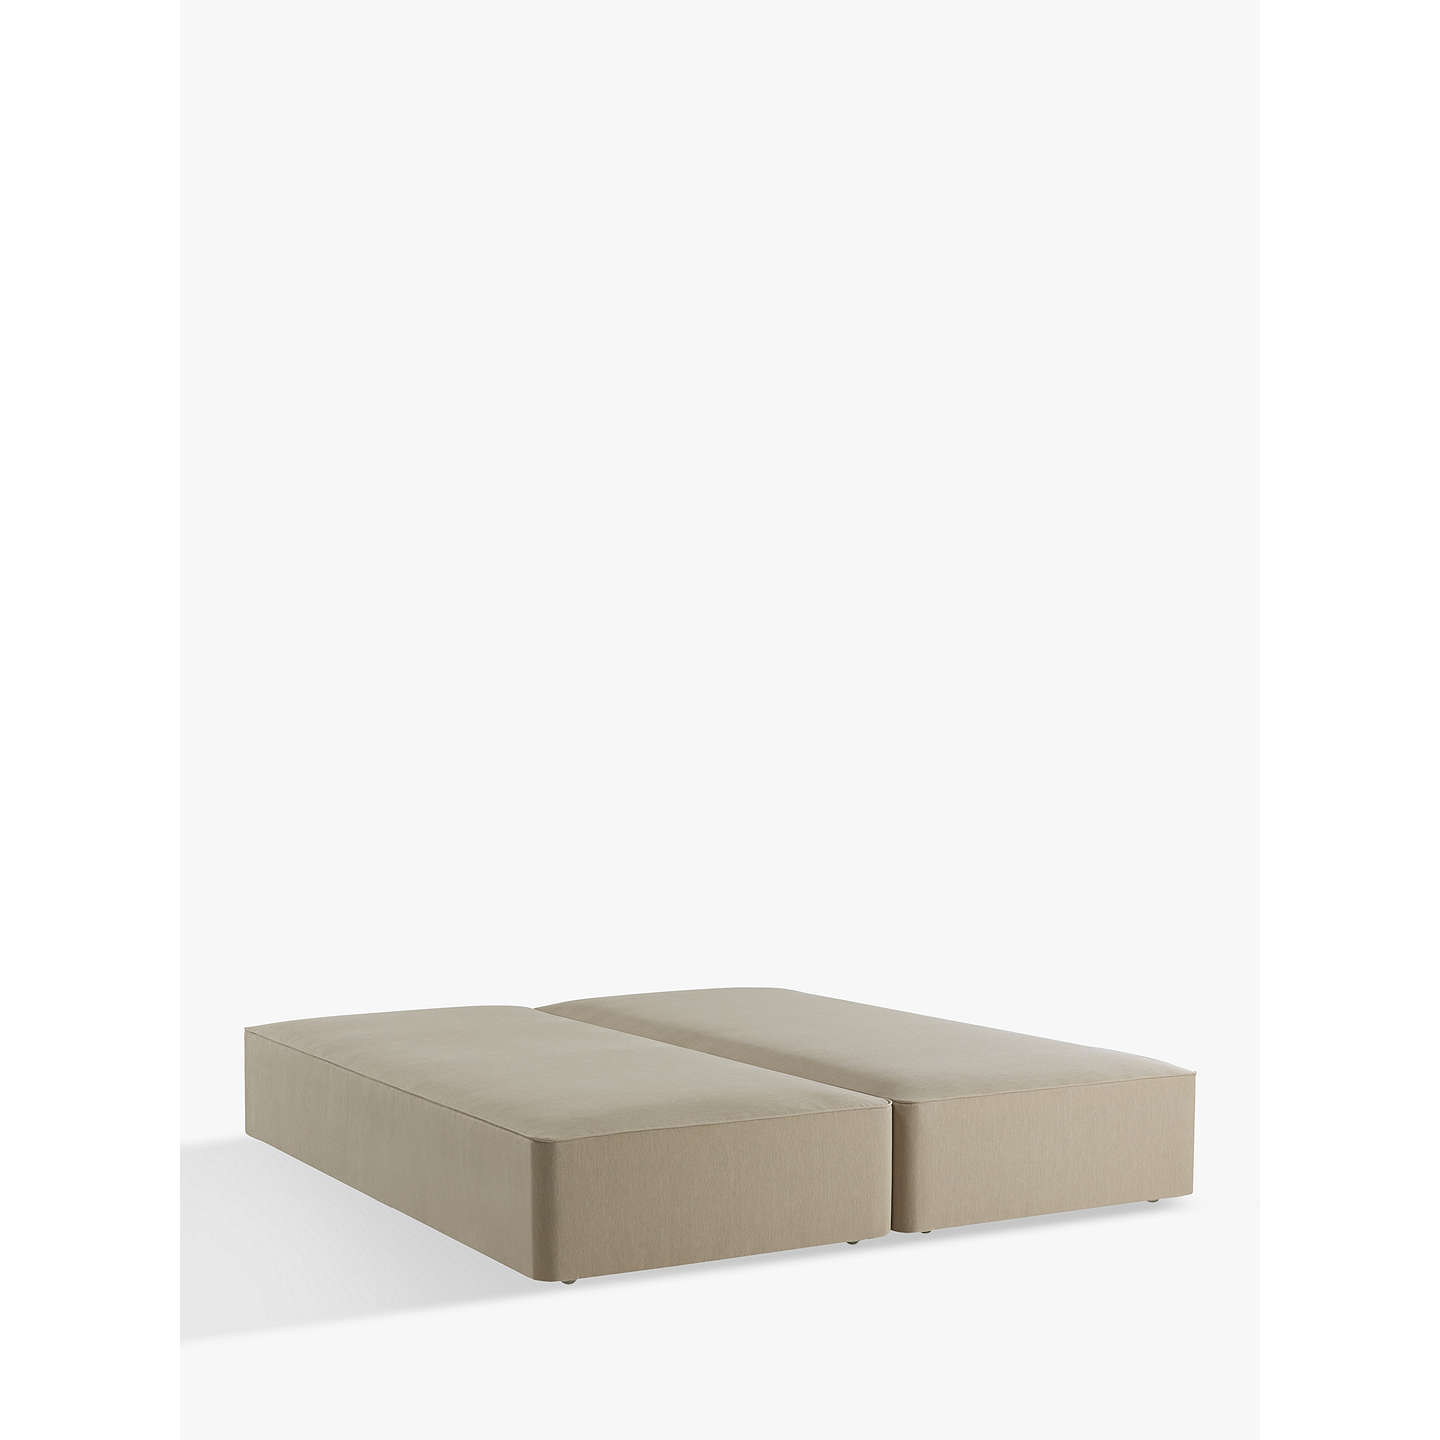 John Lewis Luxury True Edge Divan Base, Pebble Canvas, Super King Size